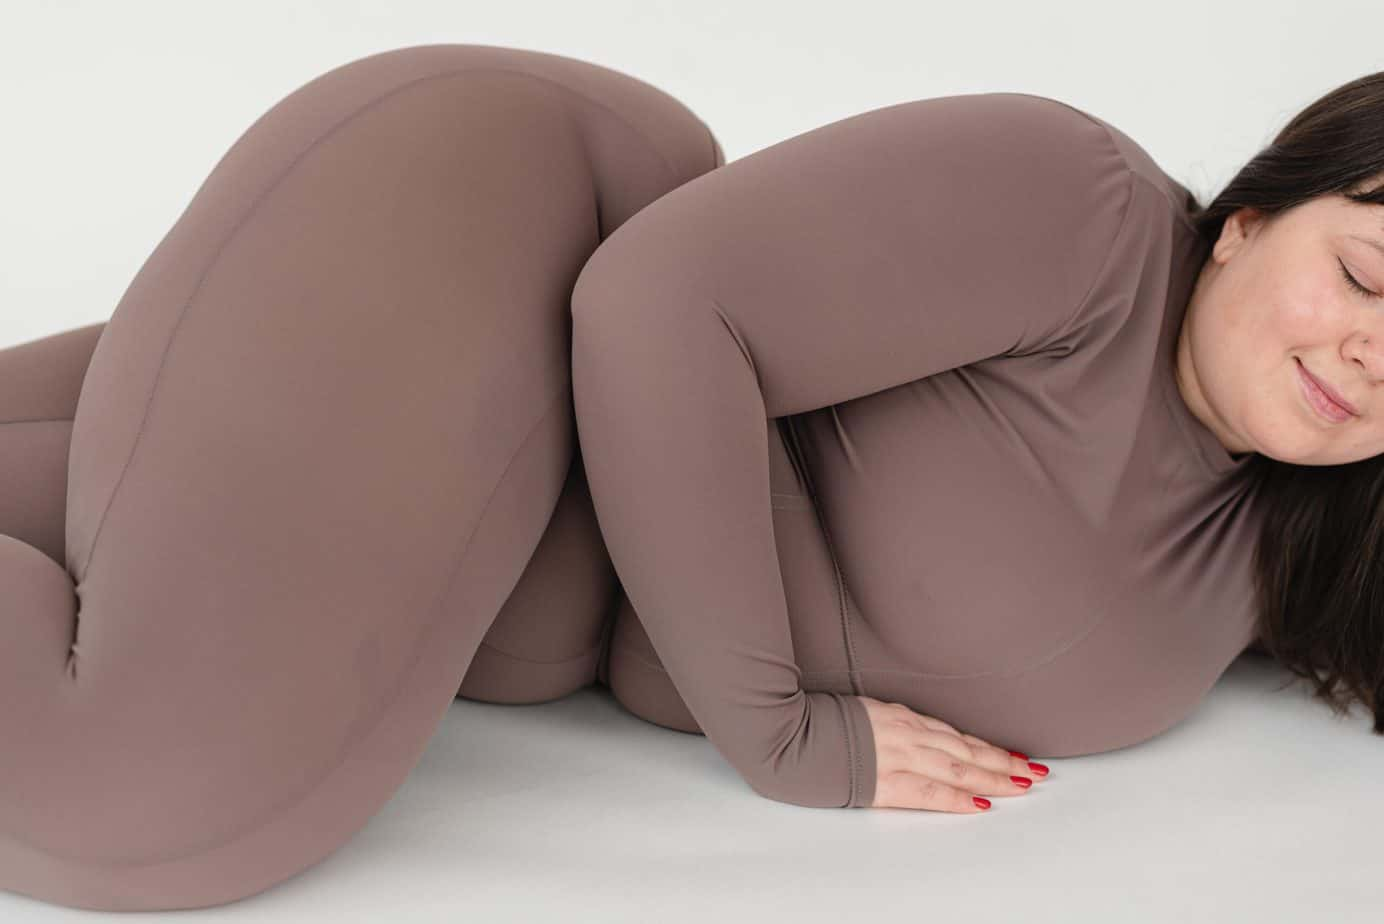 a woman lying on the floor wearing a plus size leggings